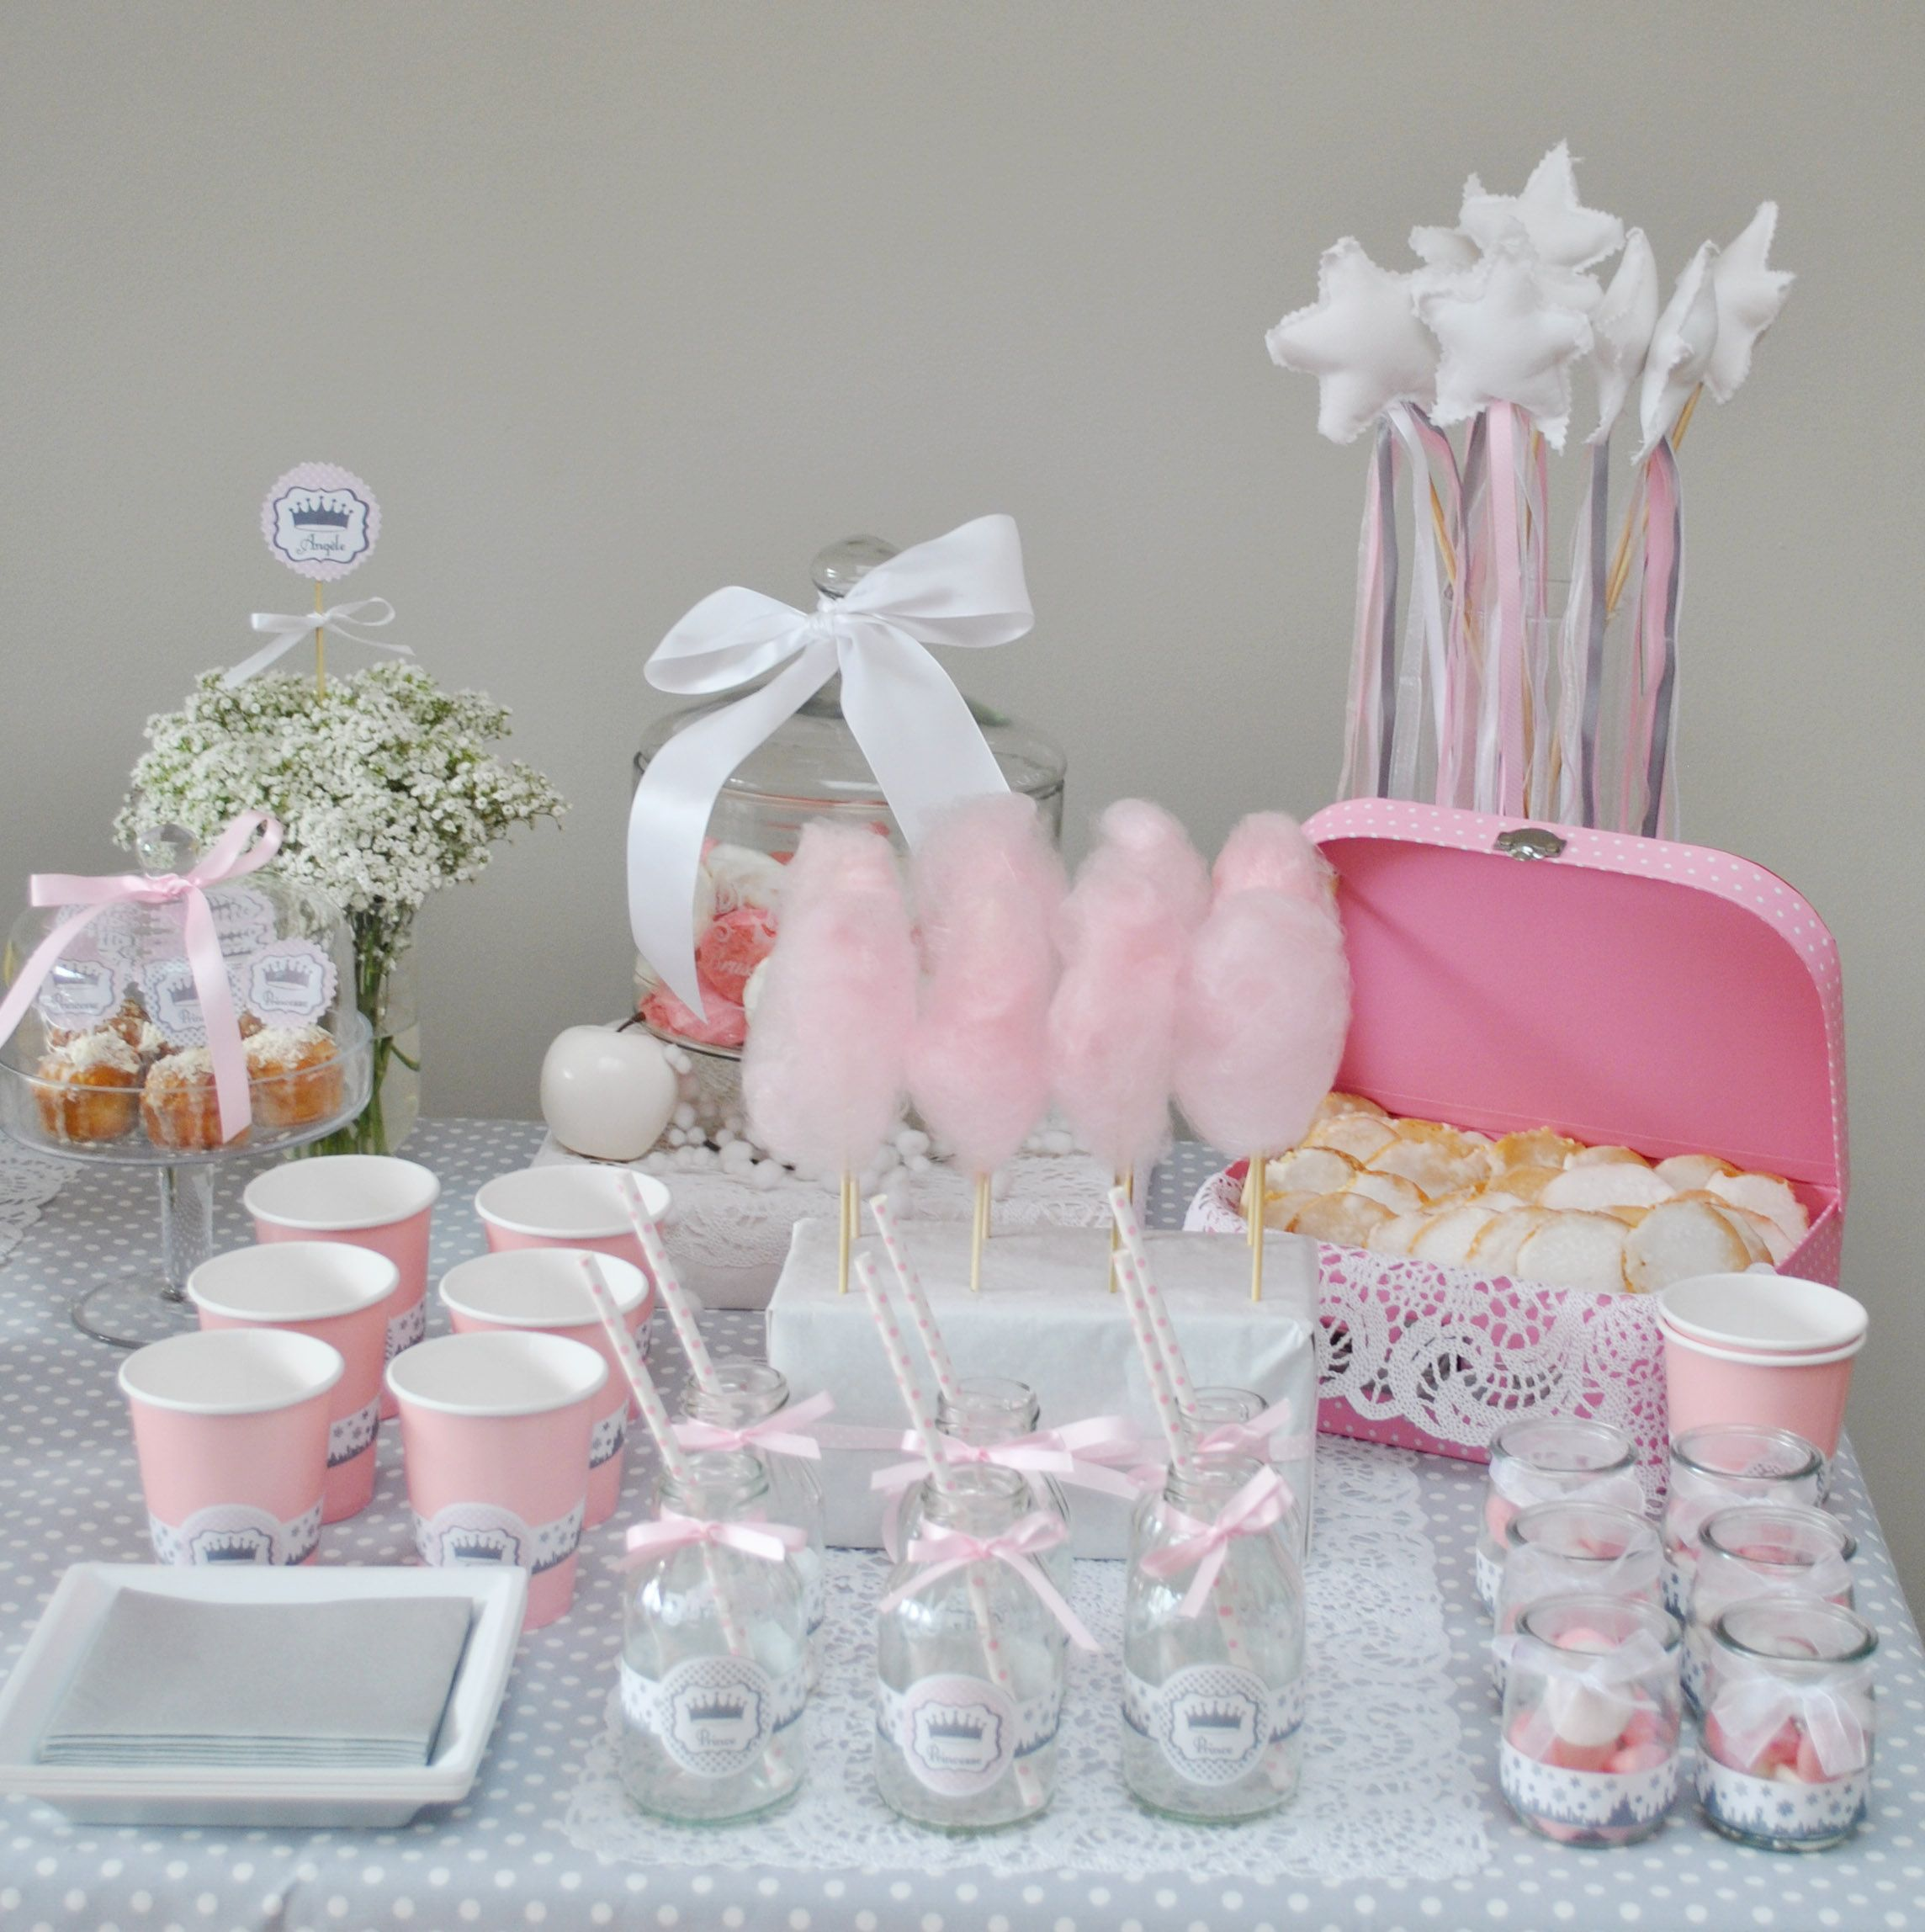 sweet table baby shower baby shower pinterest babies. Black Bedroom Furniture Sets. Home Design Ideas